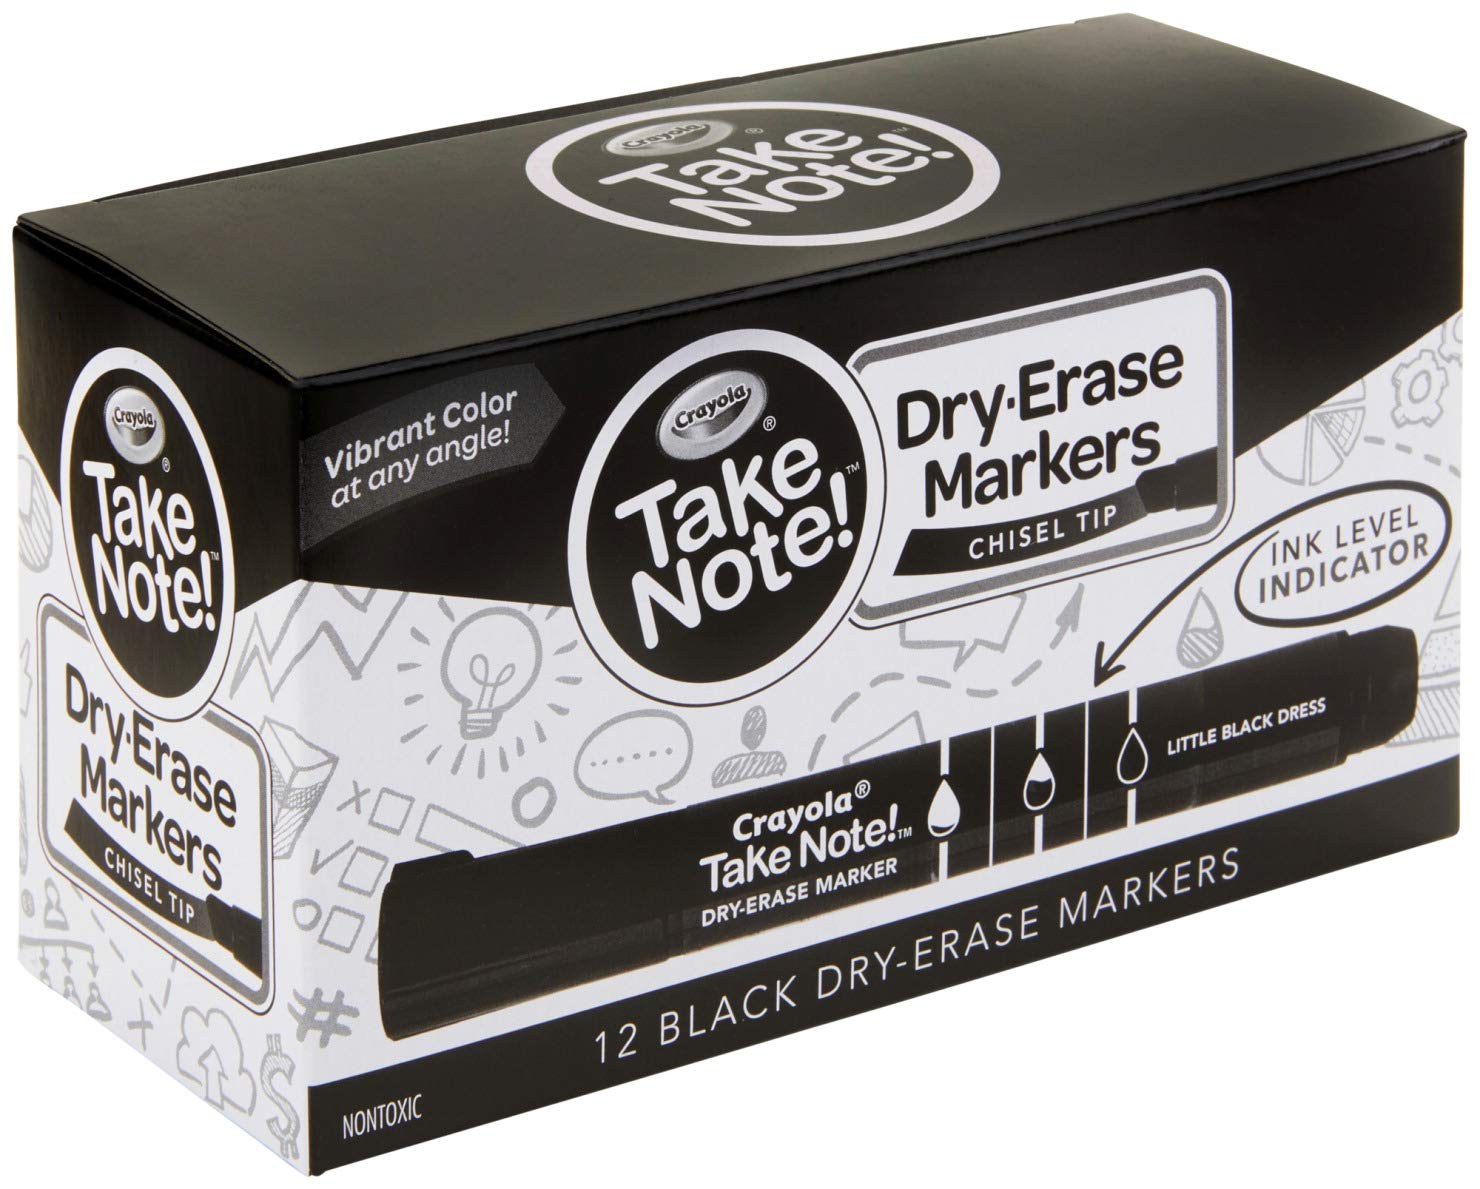 Crayola Take Note Dry Erase Markers, Black Chisel Tip Markers, Office & School Supplies, Kids At Home Activities, 12 Count